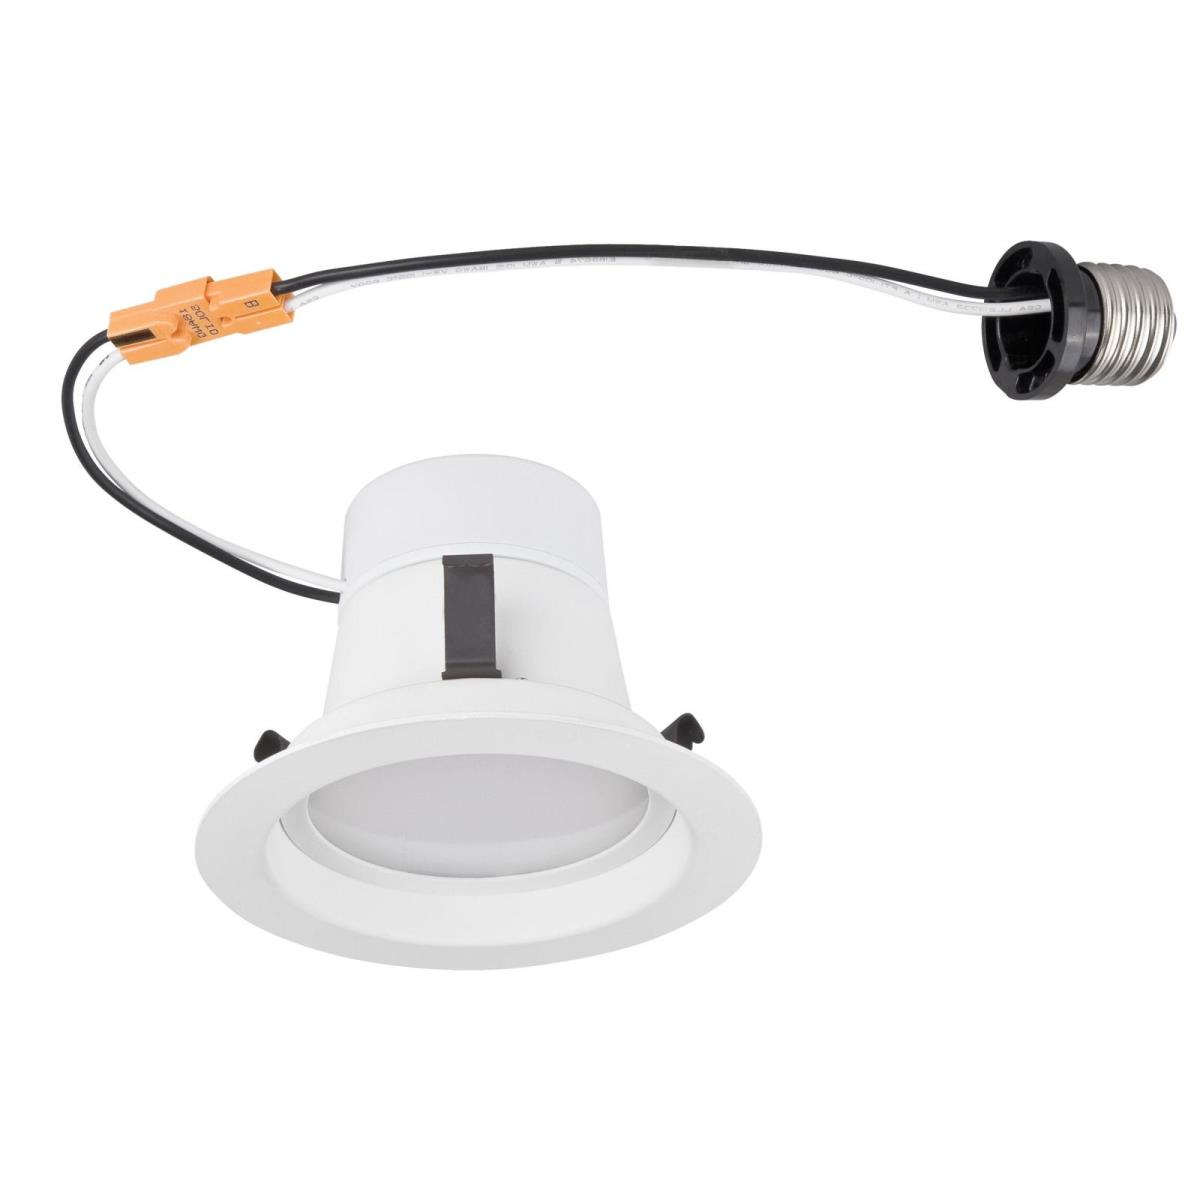 "8W 4"" Recessed Downlight LED Dimmable Warm White (2700K) E26 (Medium) Base Socket Adapter, Smooth Baffle, 120 Volt, Contractor B"